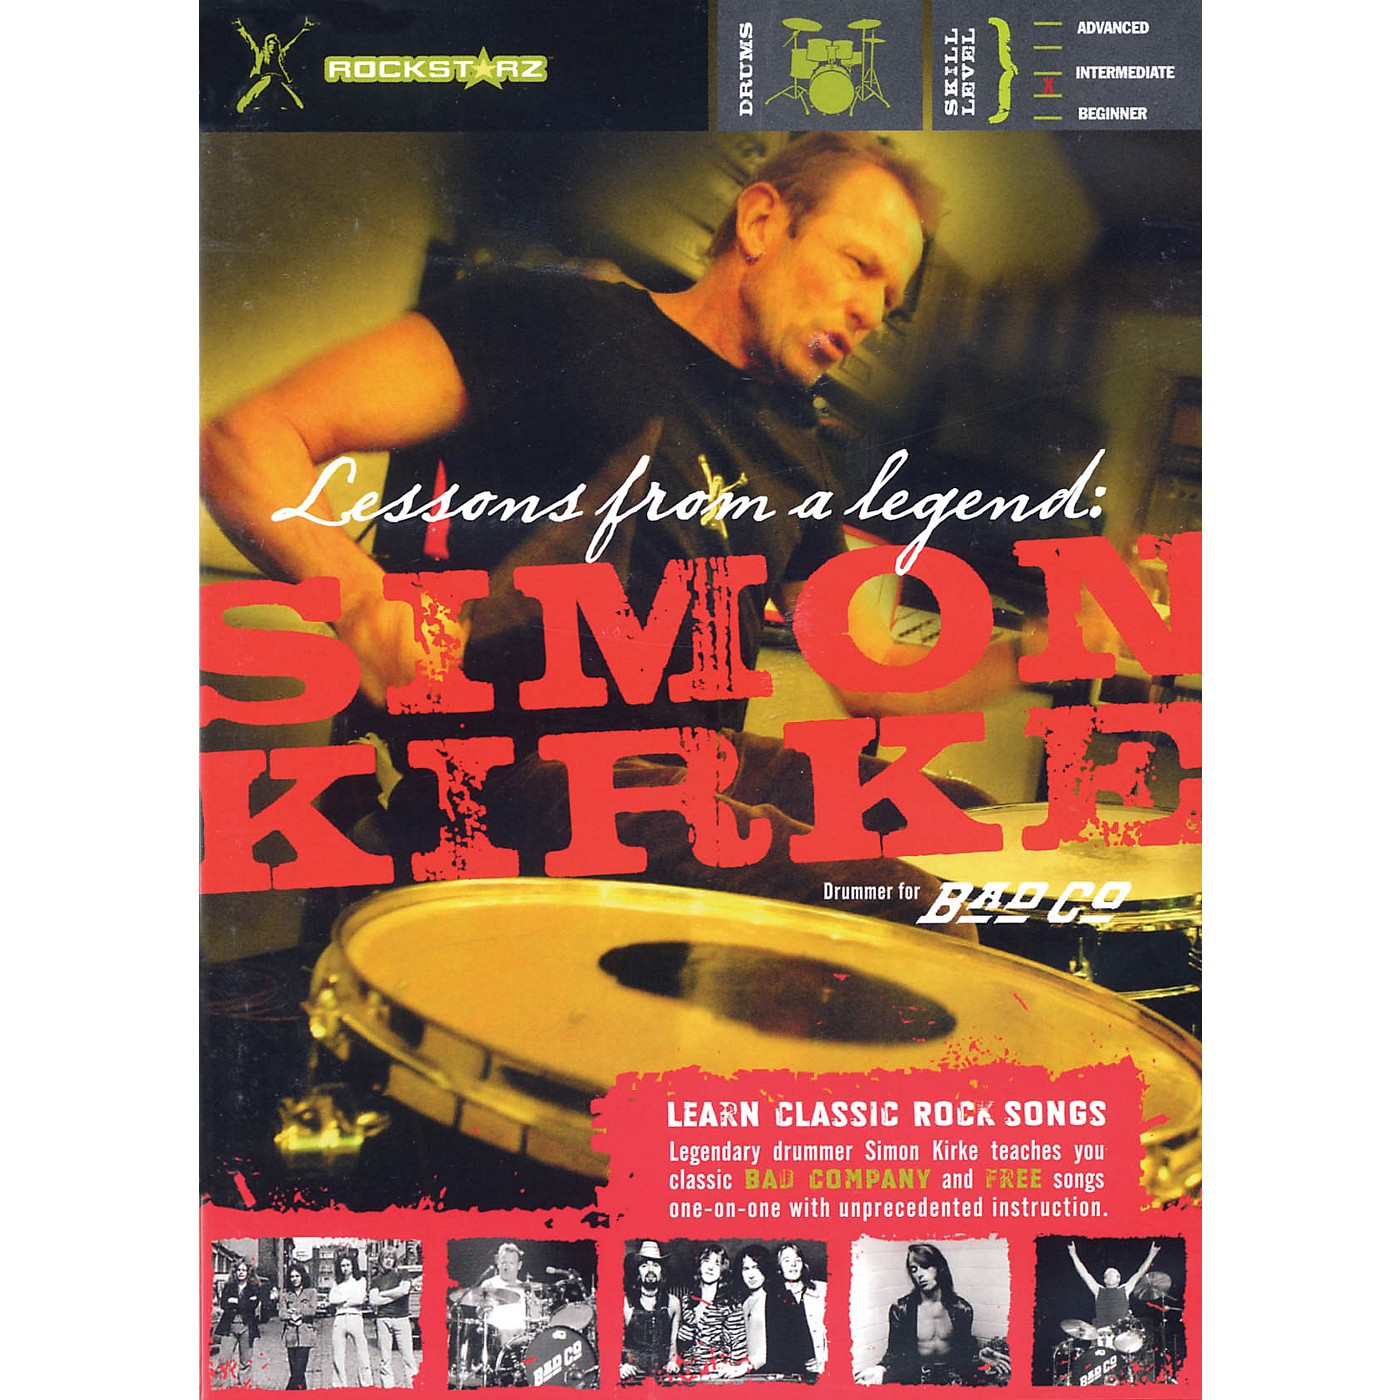 Rockstarz Simon Kirke - Lessons from a Legend Instructional/Drum/DVD Series DVD Written by Simon Kirke thumbnail